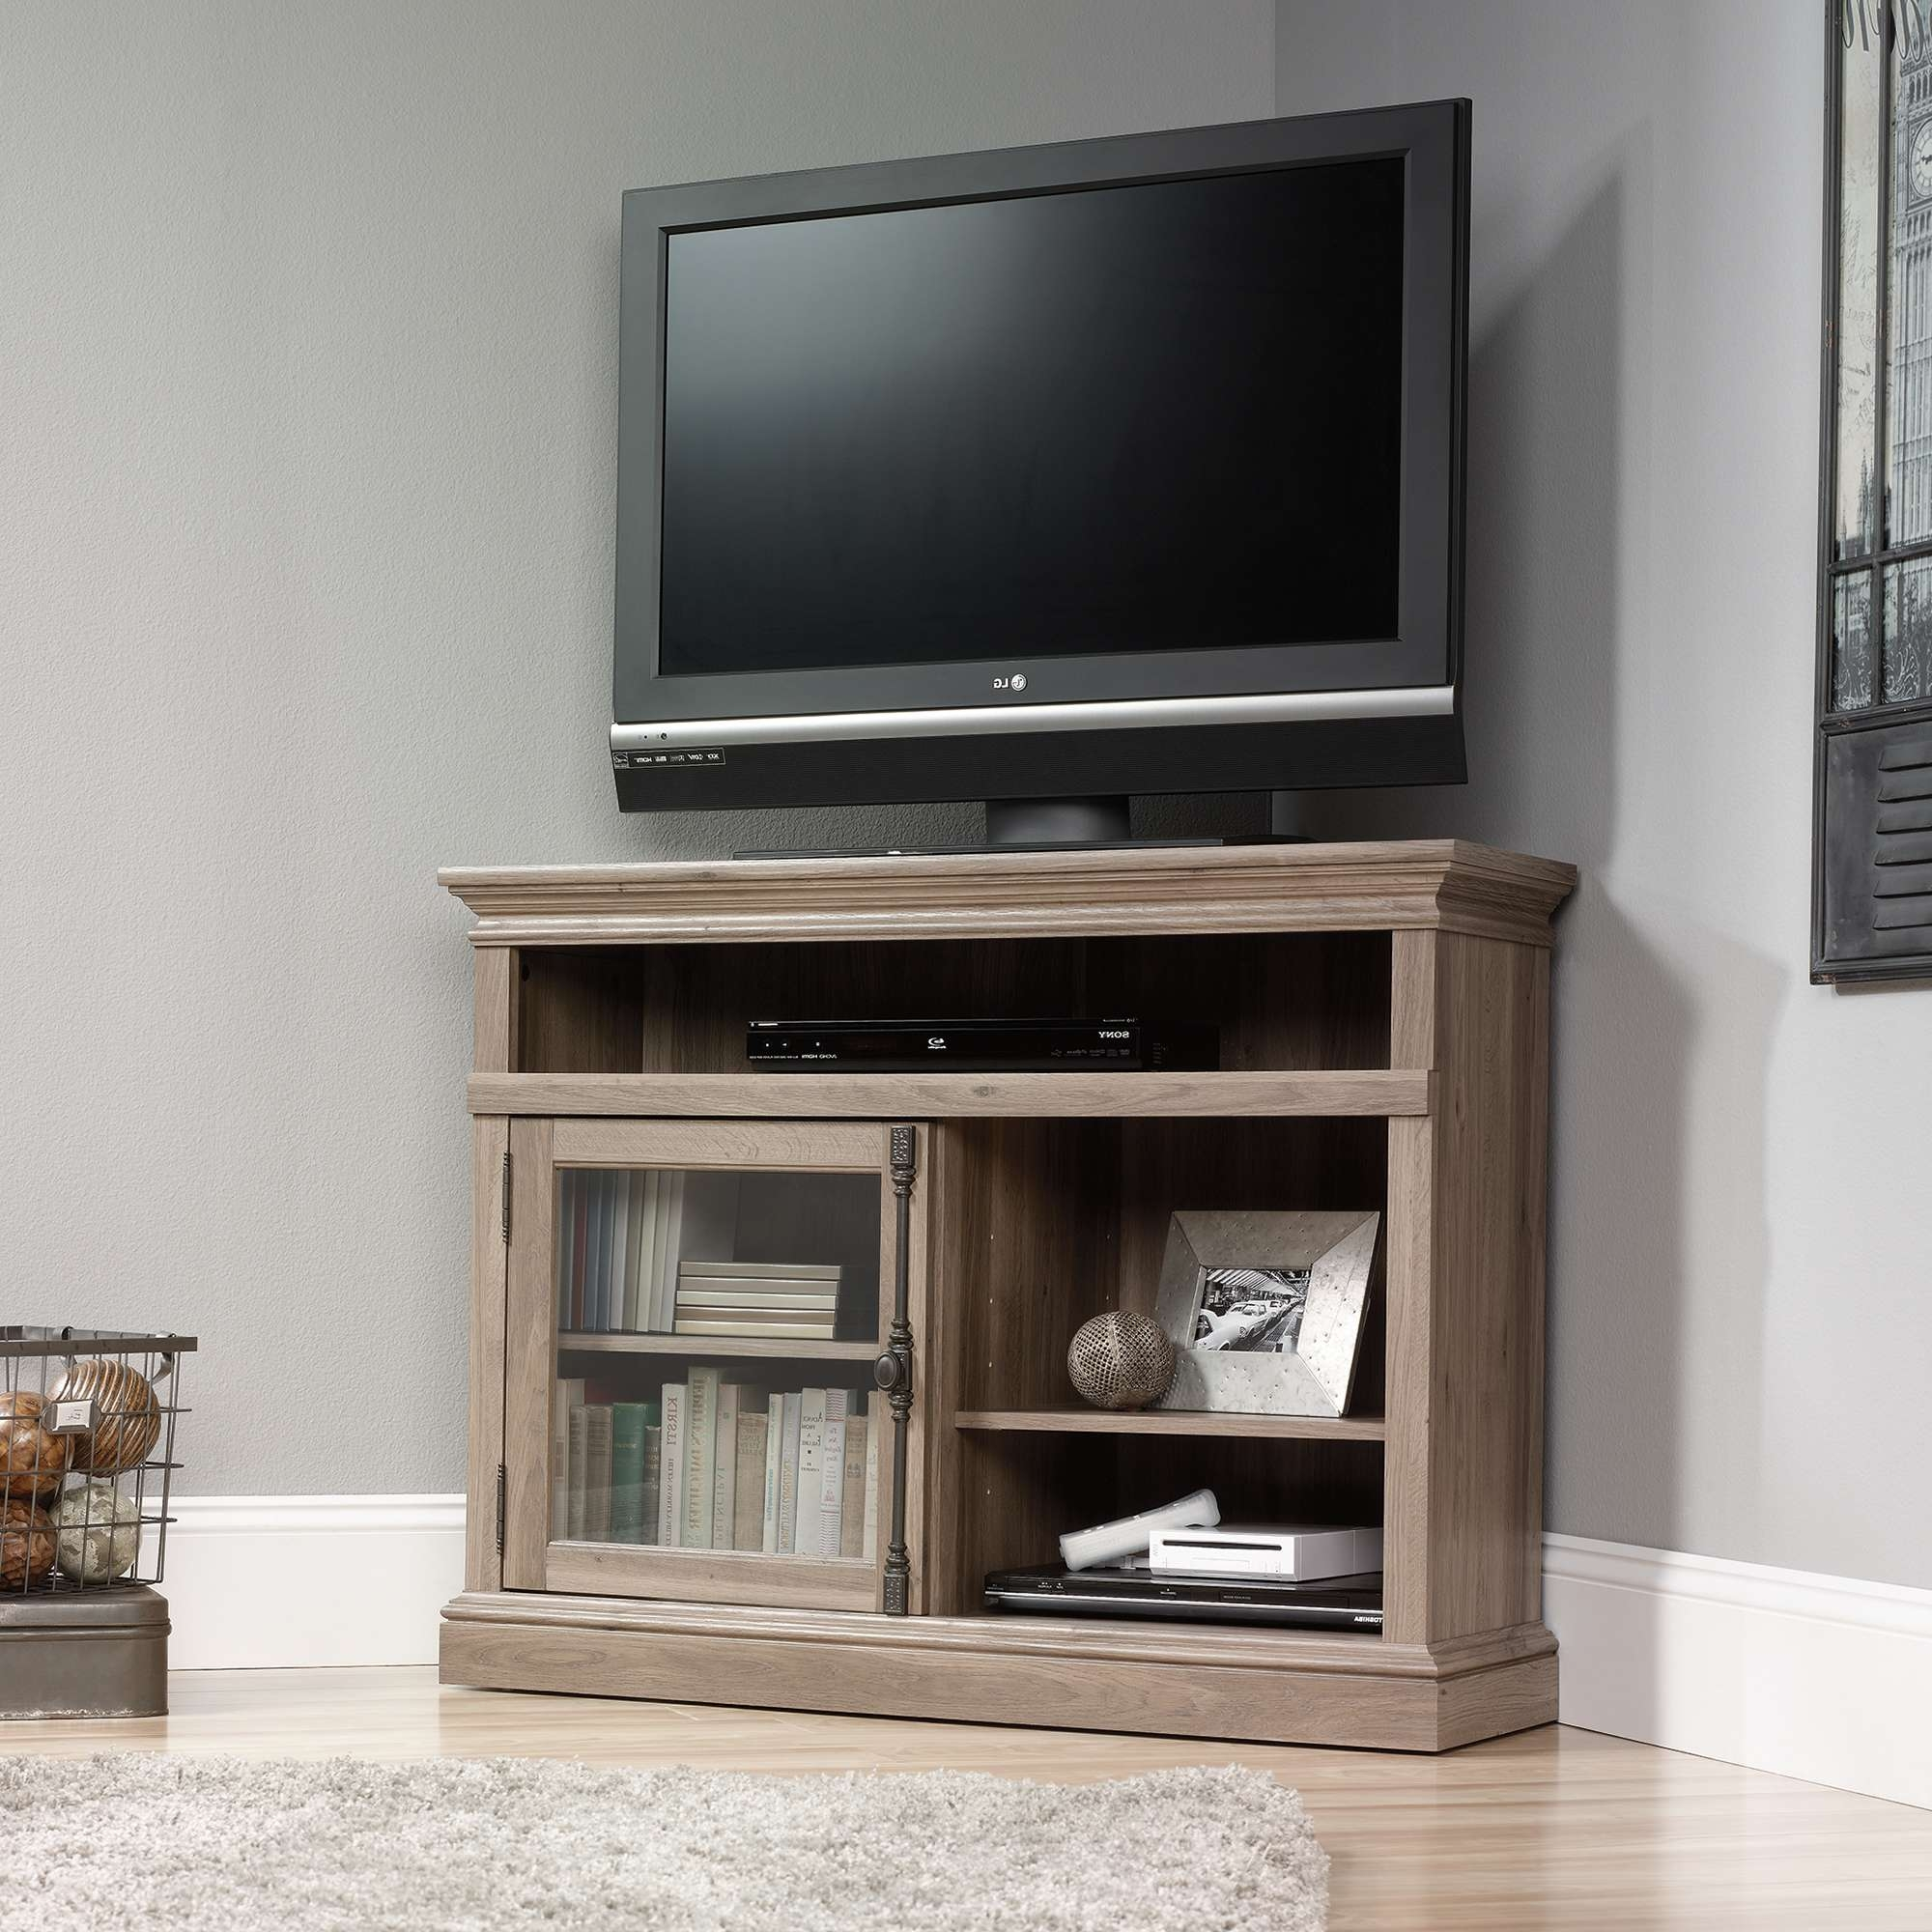 Barrister Lane | Corner Tv Stand | 414729 | Sauder Within Small Corner Tv Cabinets (View 20 of 20)